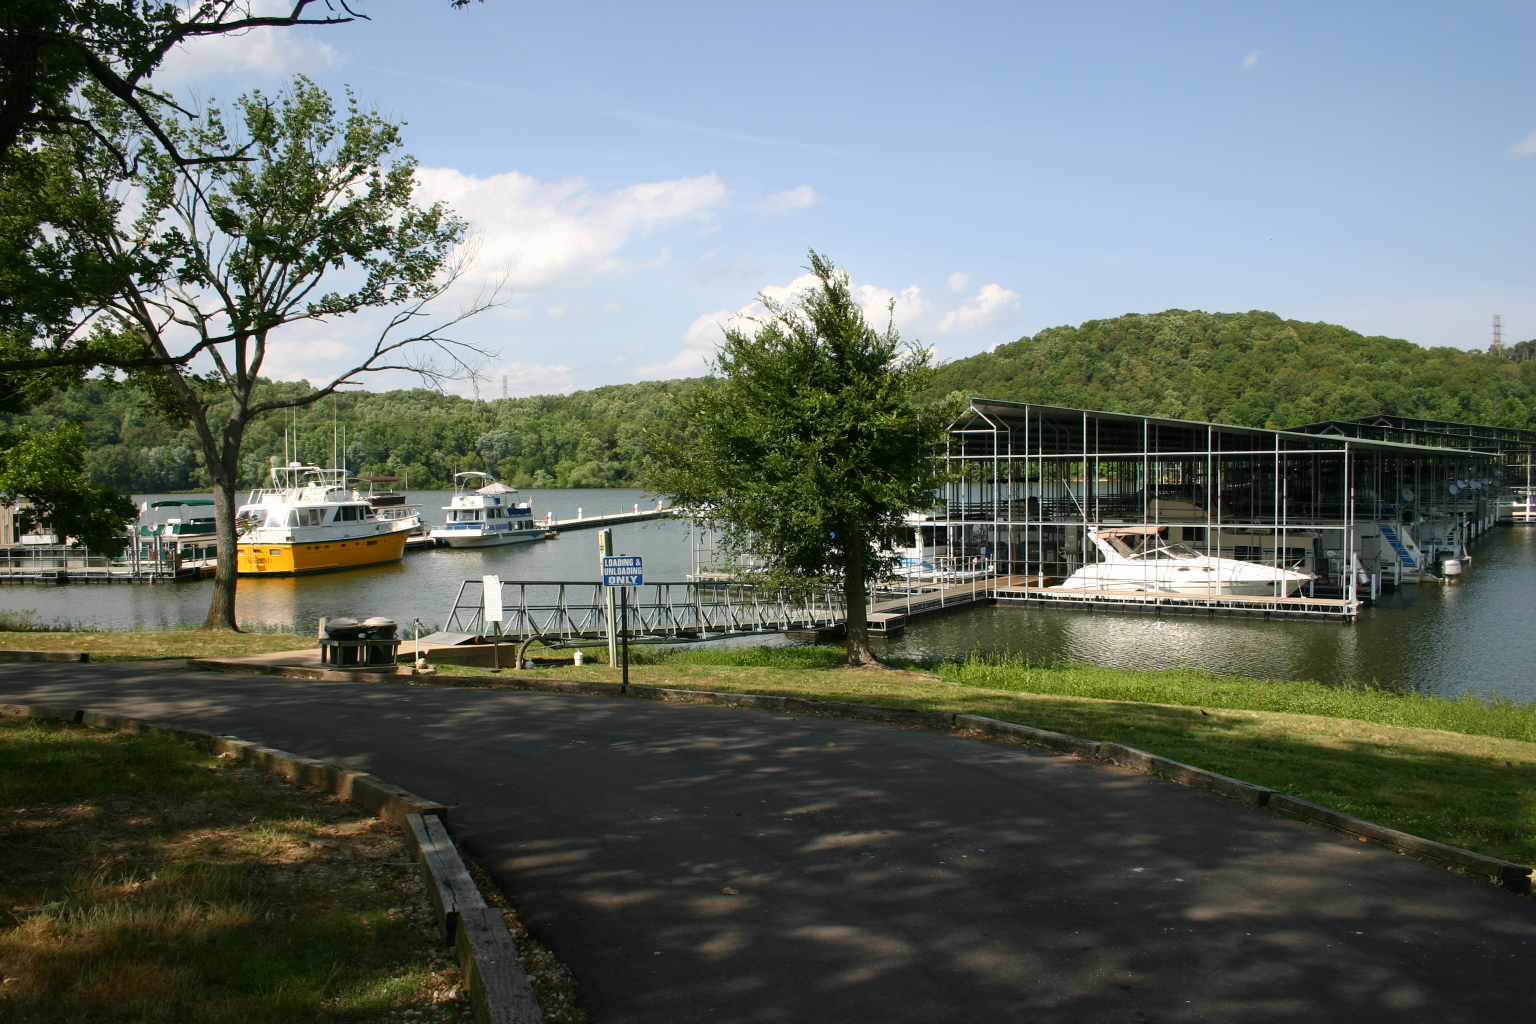 Pebble Isle Marina, Tennessee River